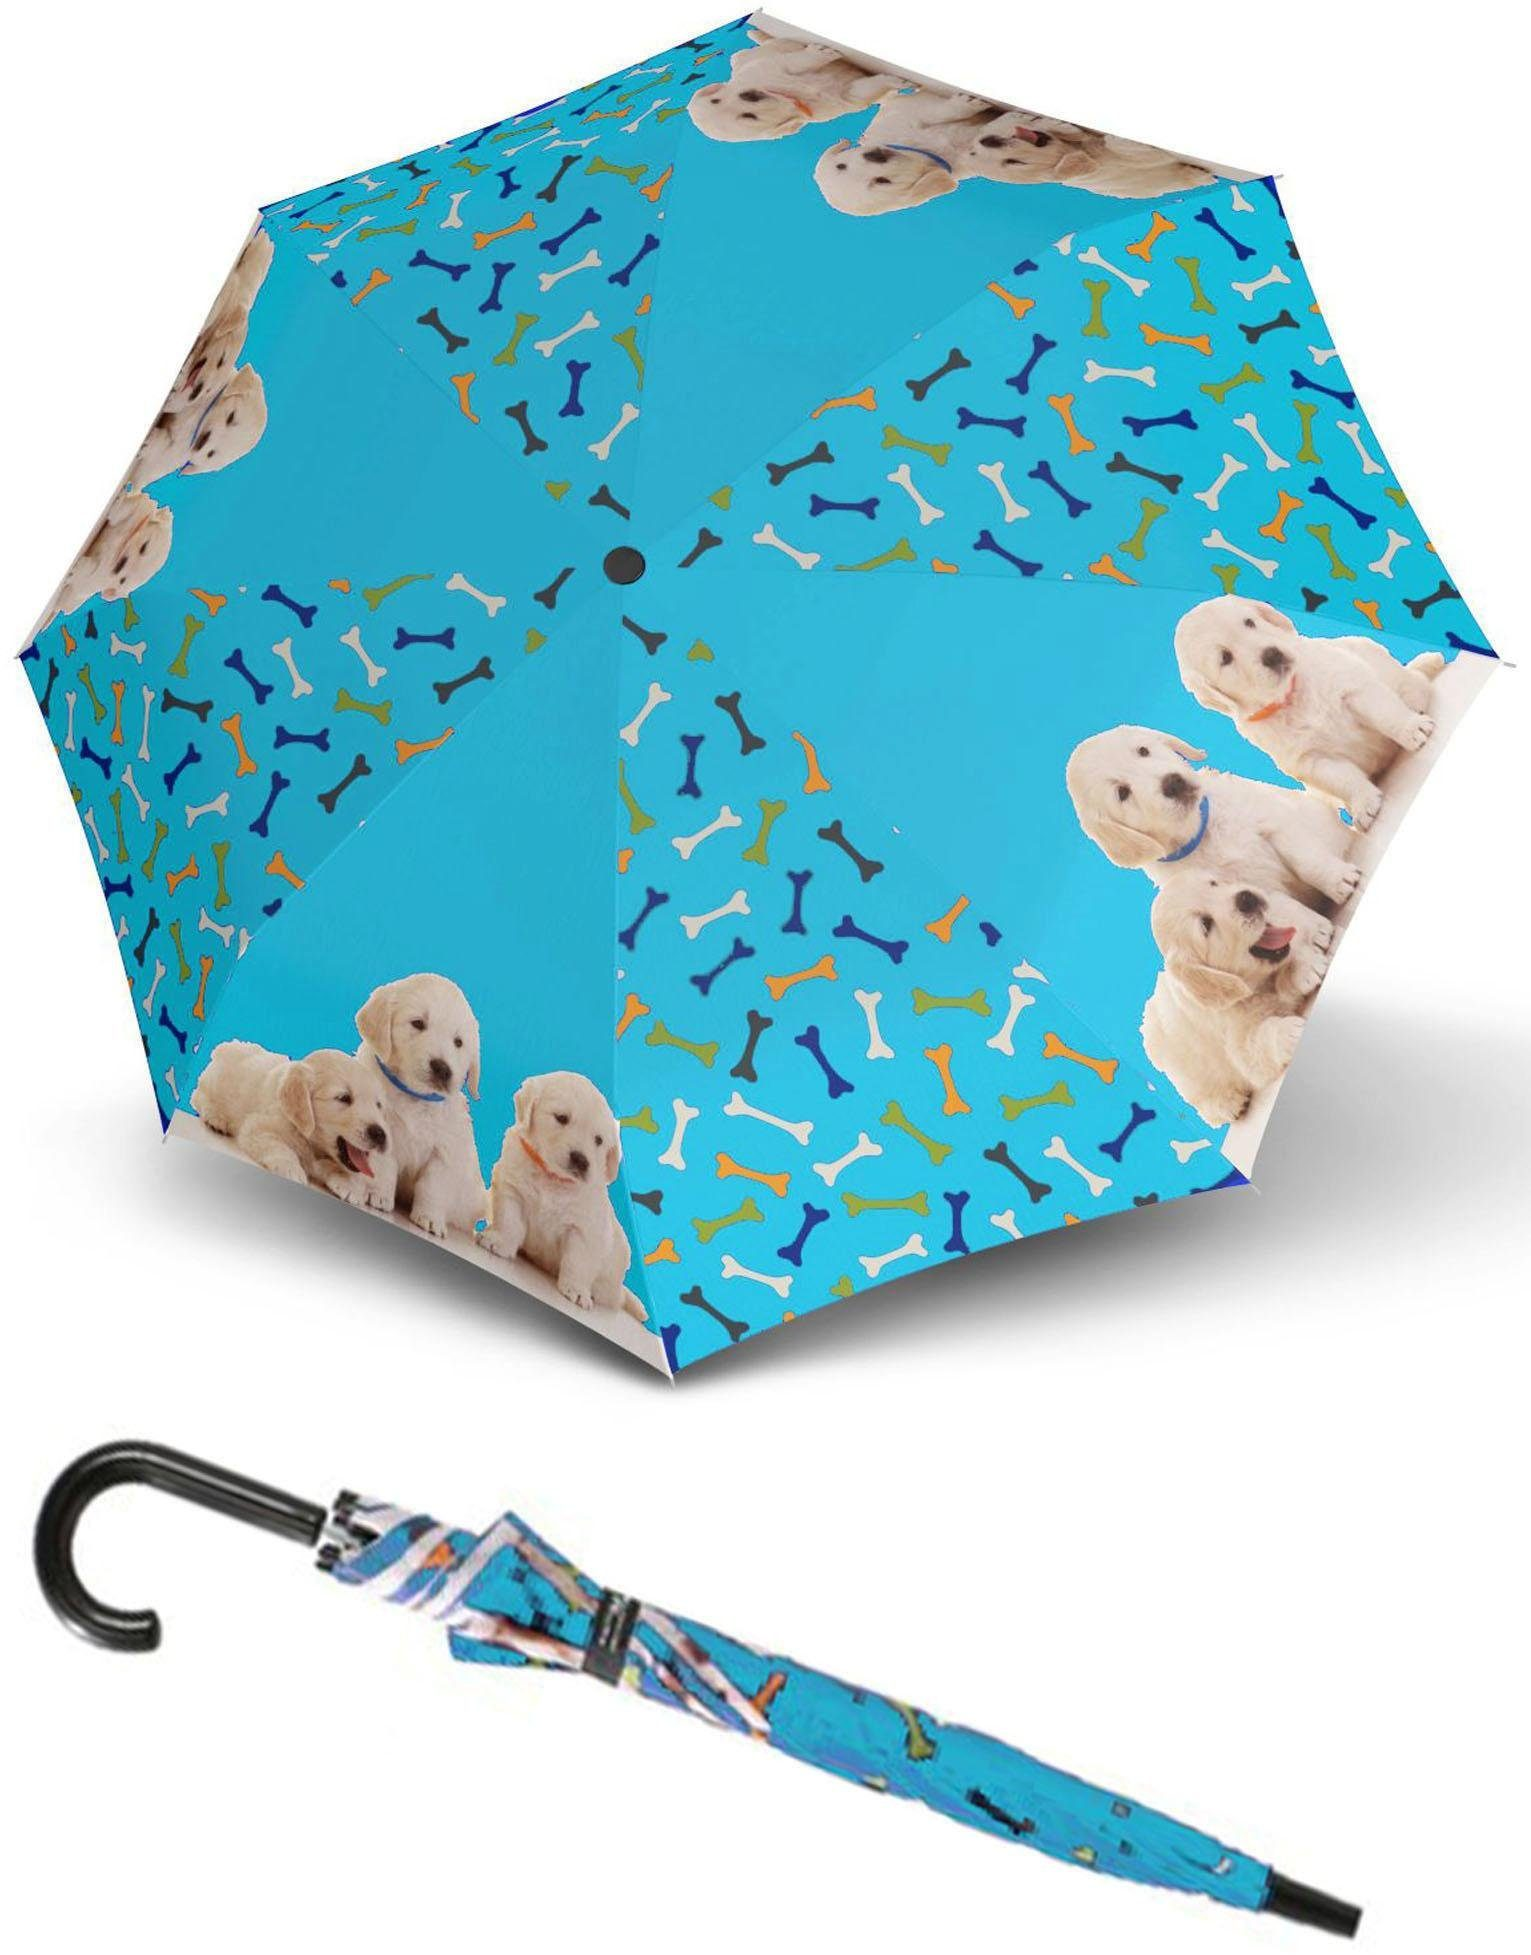 doppler® Regenschirm für Kinder, »Art Collection Jugend Dogs«